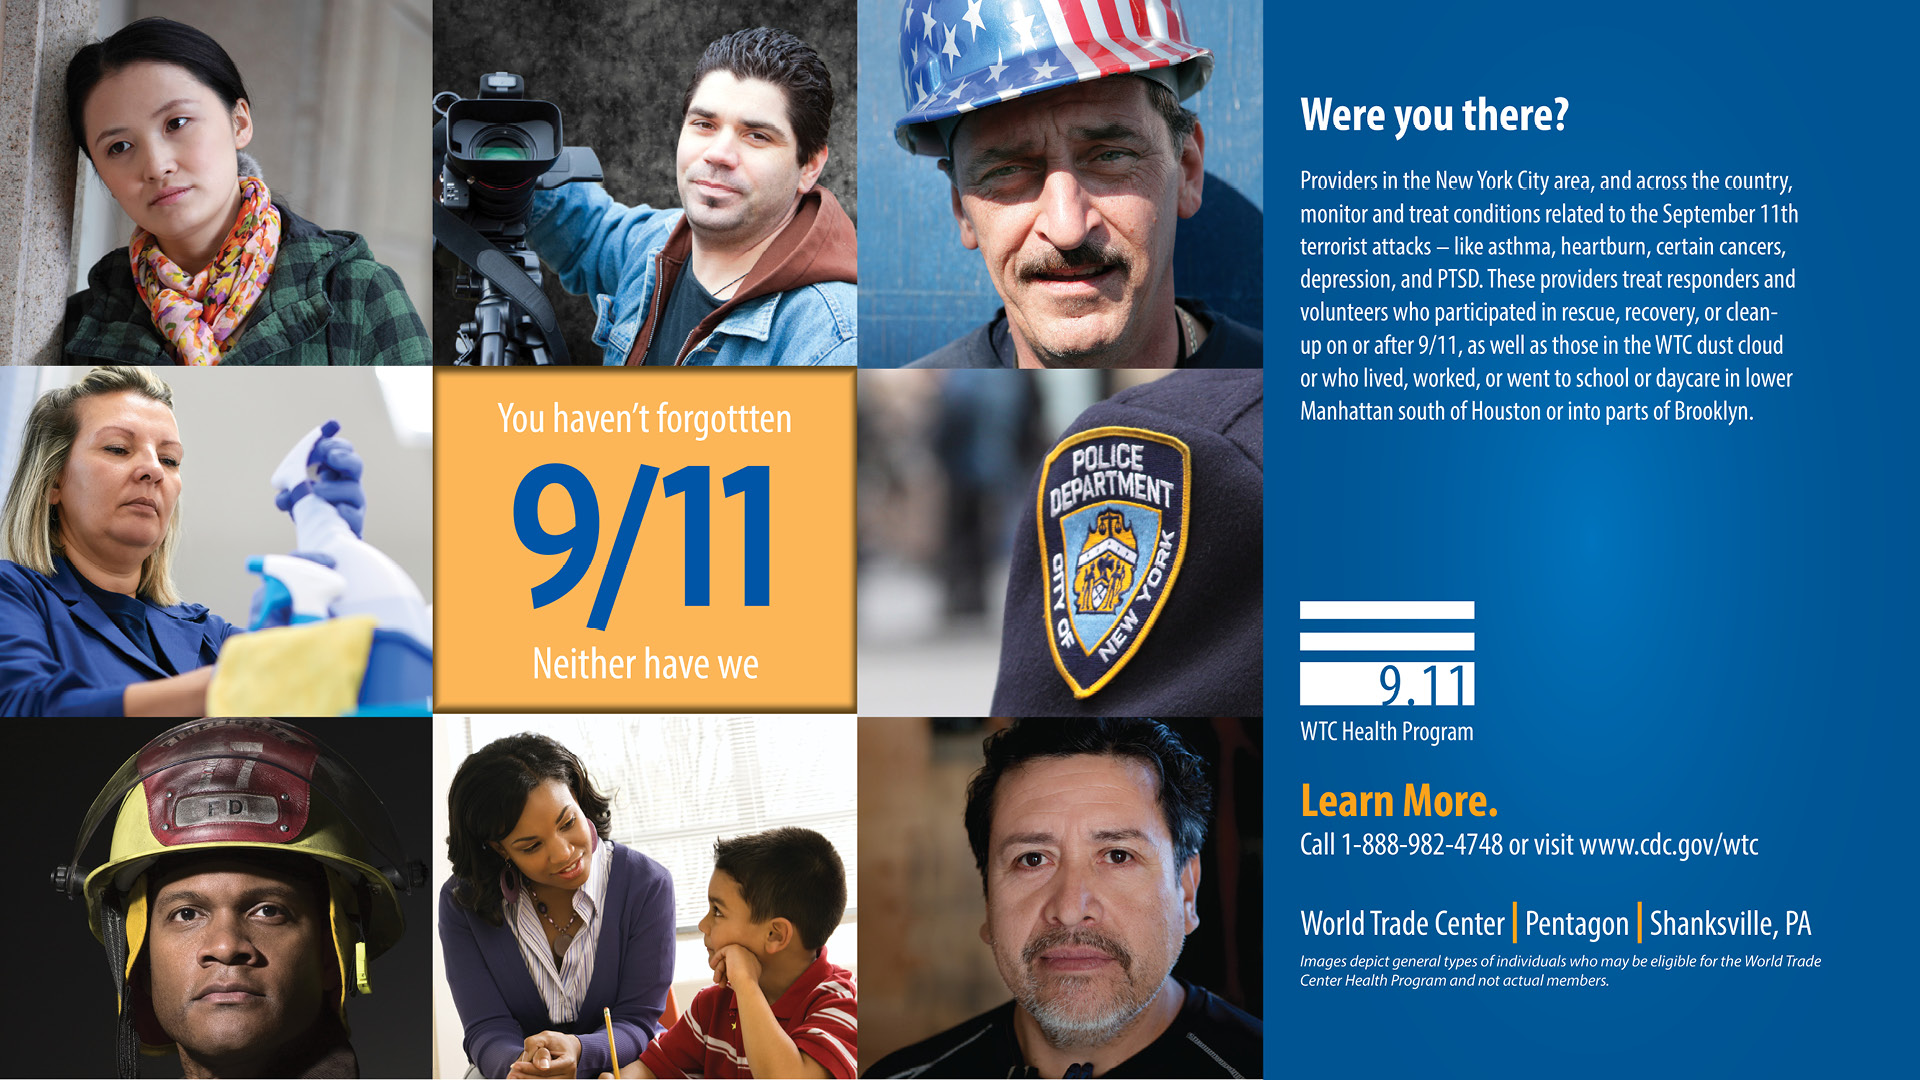 WTC Health Program Awareness banner